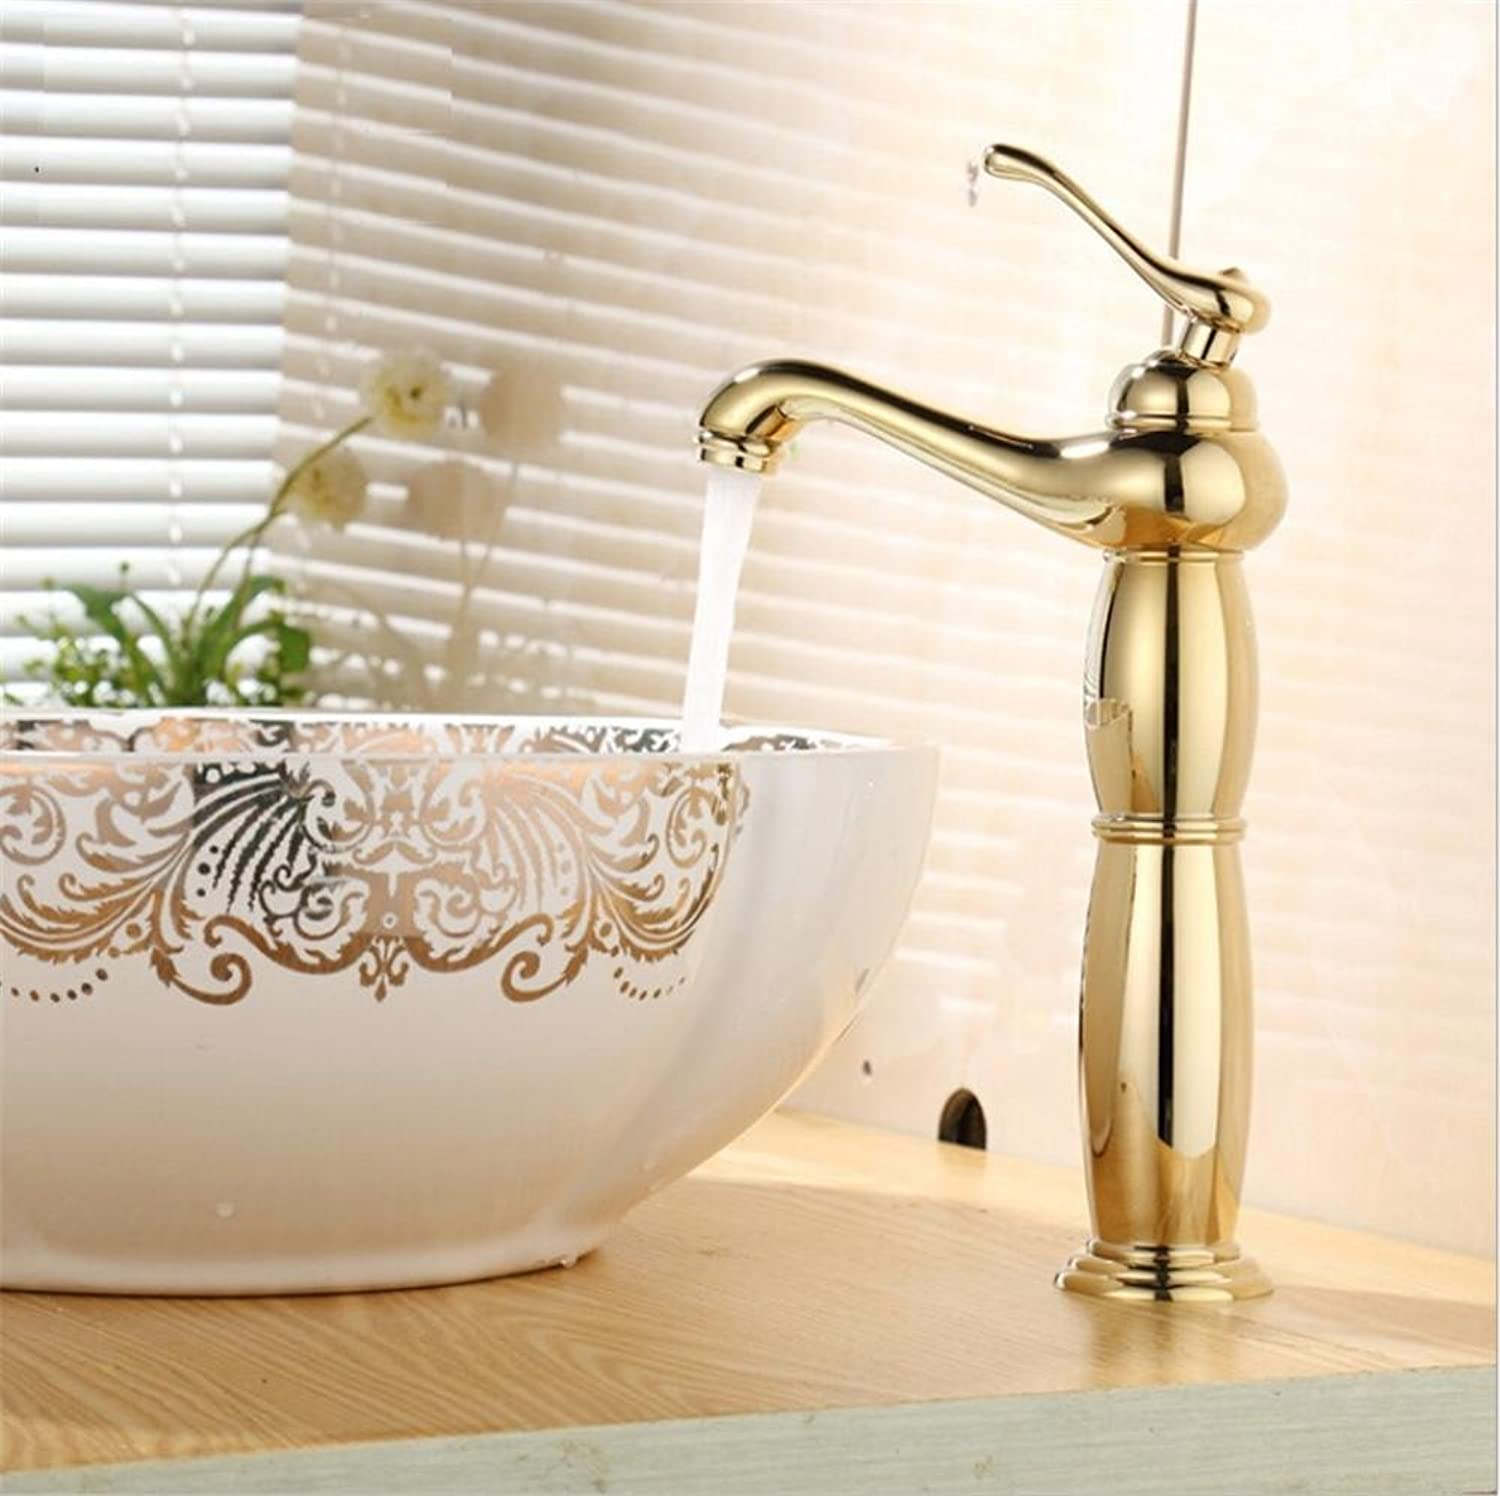 HomJo Bathroom Faucet Chrome Brass Ceramic Single Hole Sink Mixer Tap